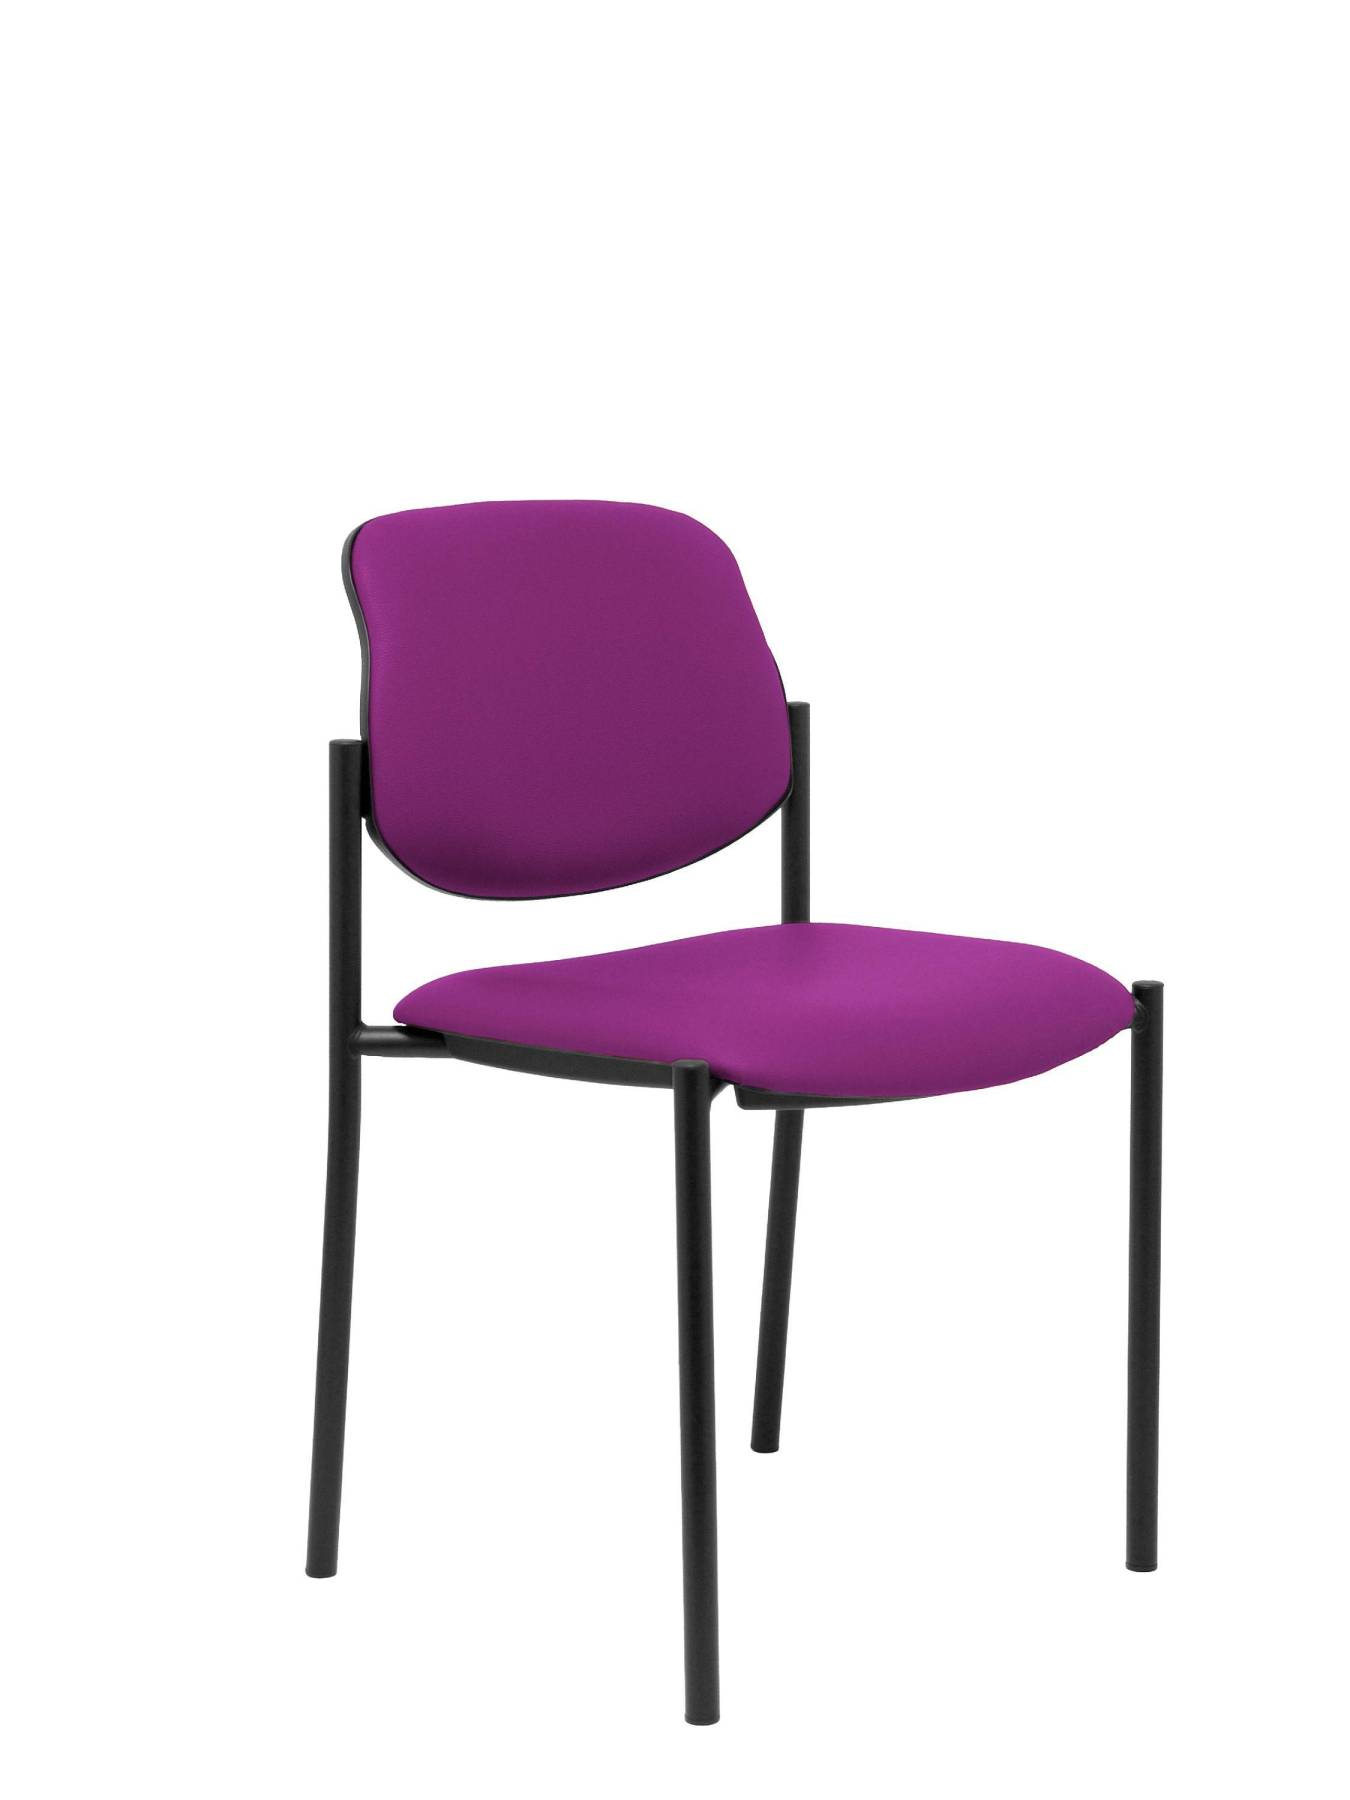 Visitor Chair 4's Topsy And Estructrua Negro-up Seat And Backstop Upholstered In Tissue Similpiel Mulberry Colour TAPHOLE